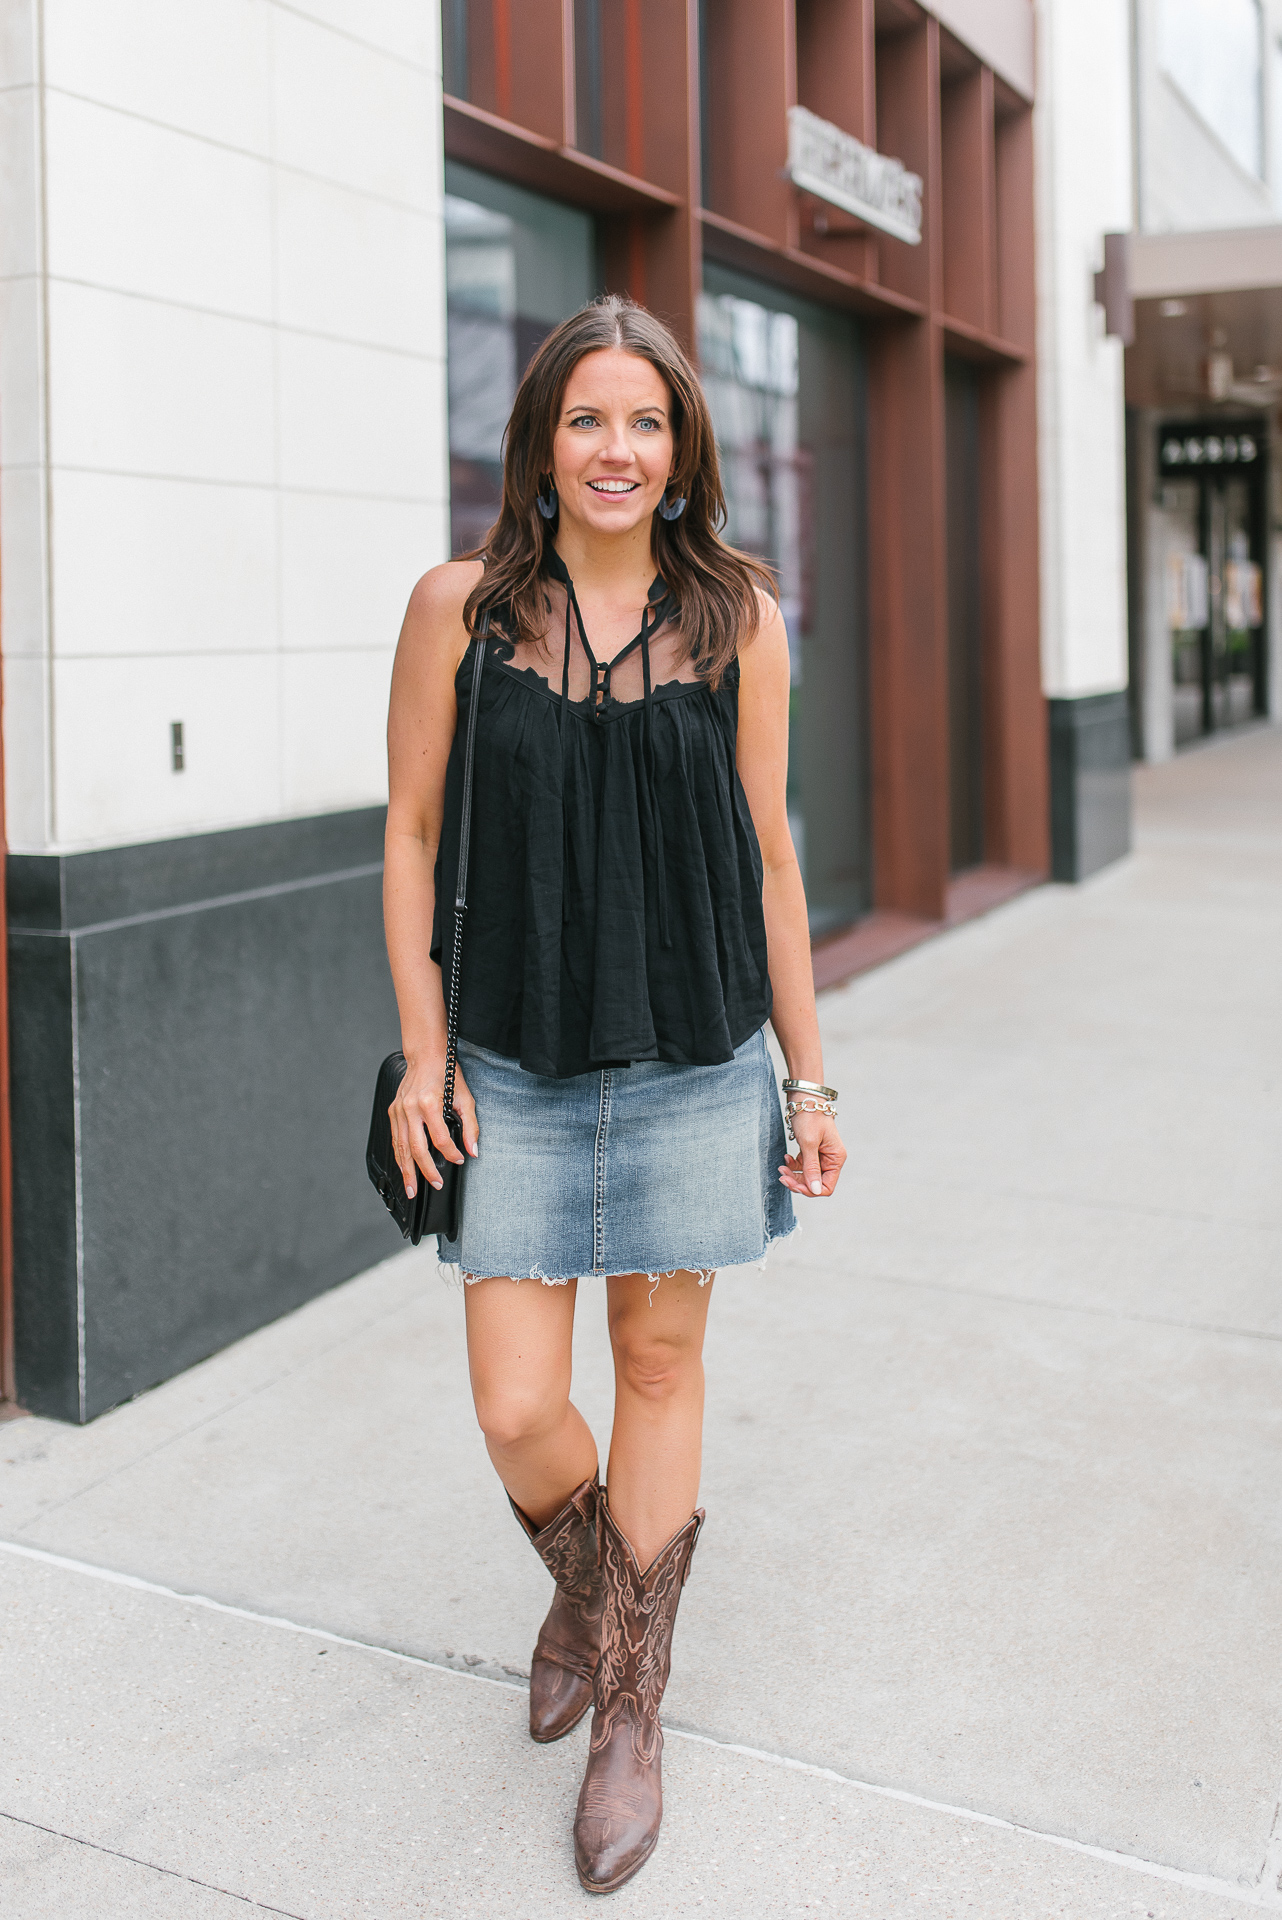 Rodeo Outfit with Cowboy Boots - Lady